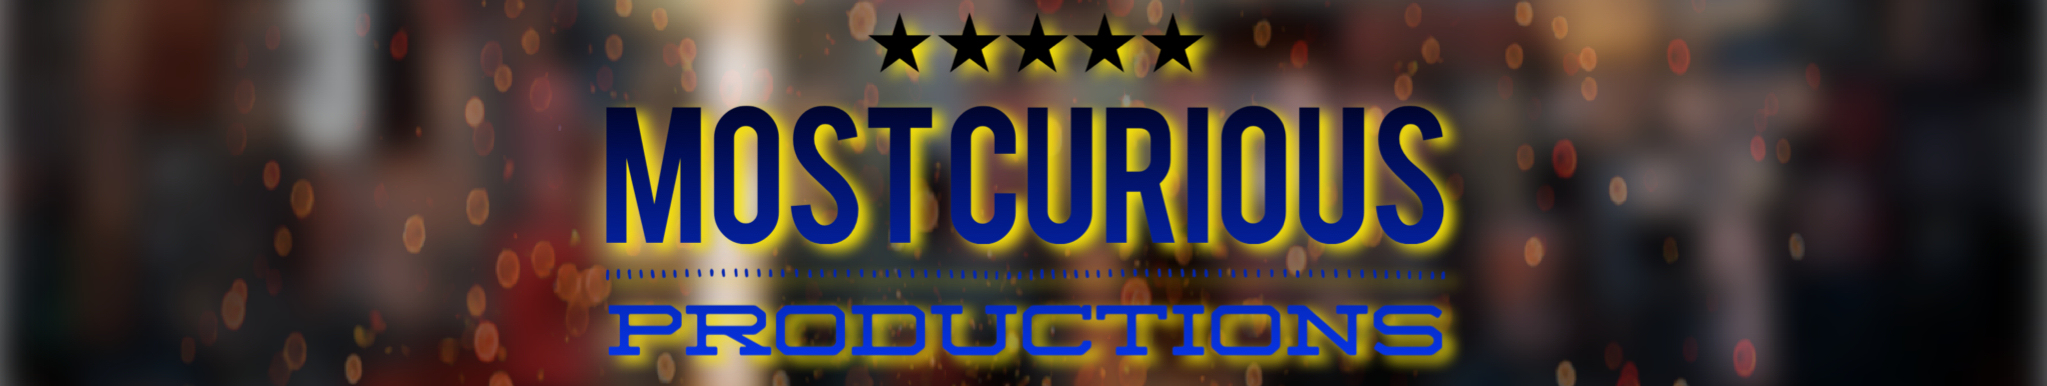 most curious productions